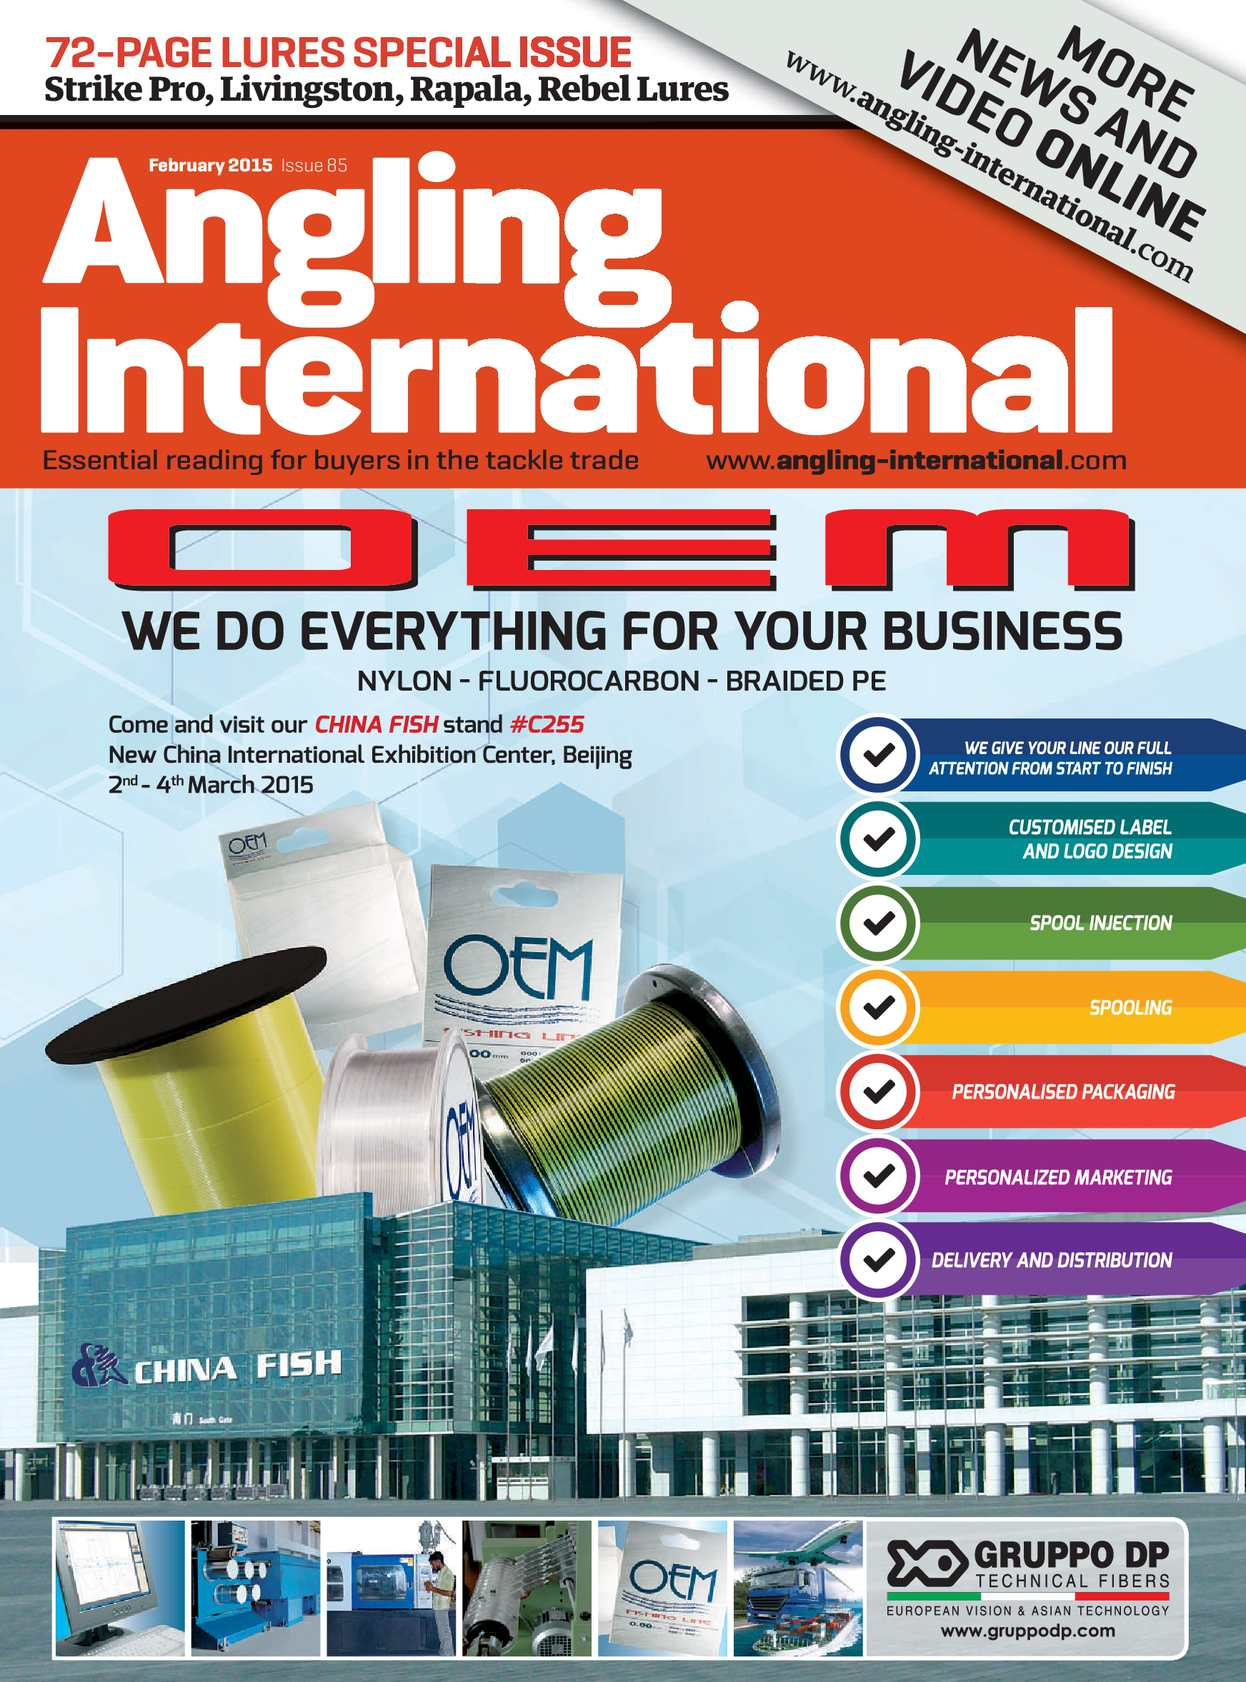 51d0bf41d8 Calaméo - Angling International - February 2015 - Issue 85